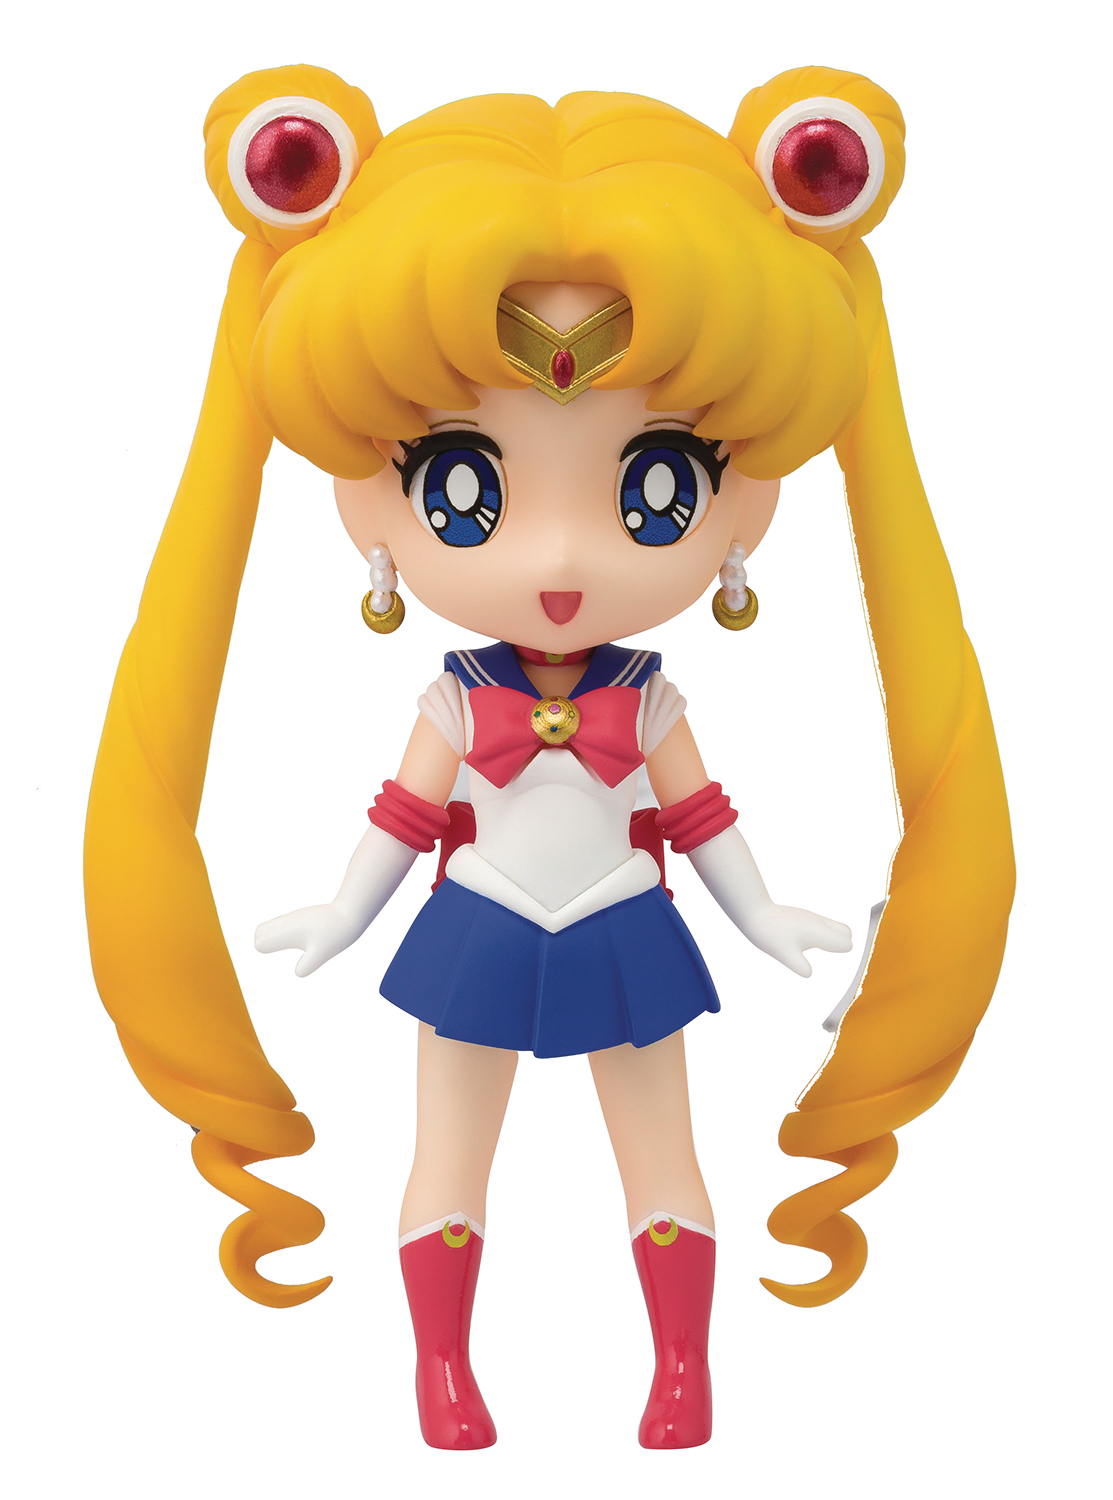 SAILOR MOON SAILOR MOON FIGUARTS MINI FIG